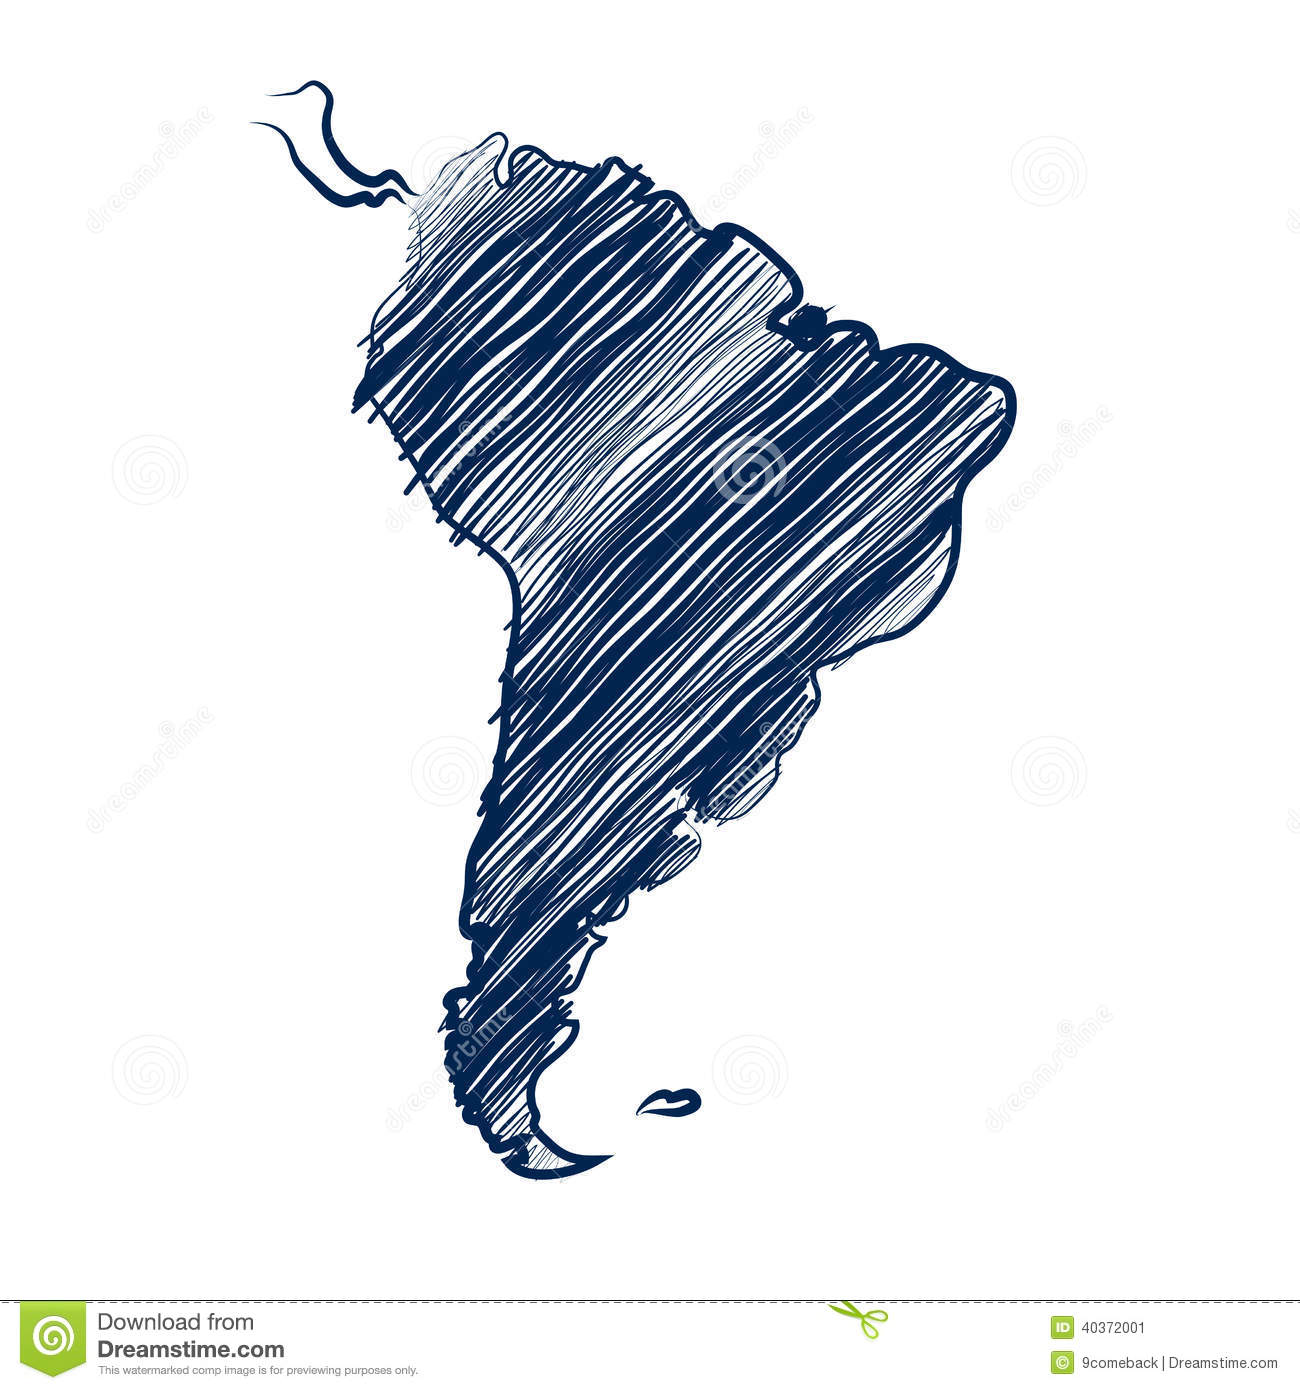 South America Map Stock Vector Illustration Of America 40372001